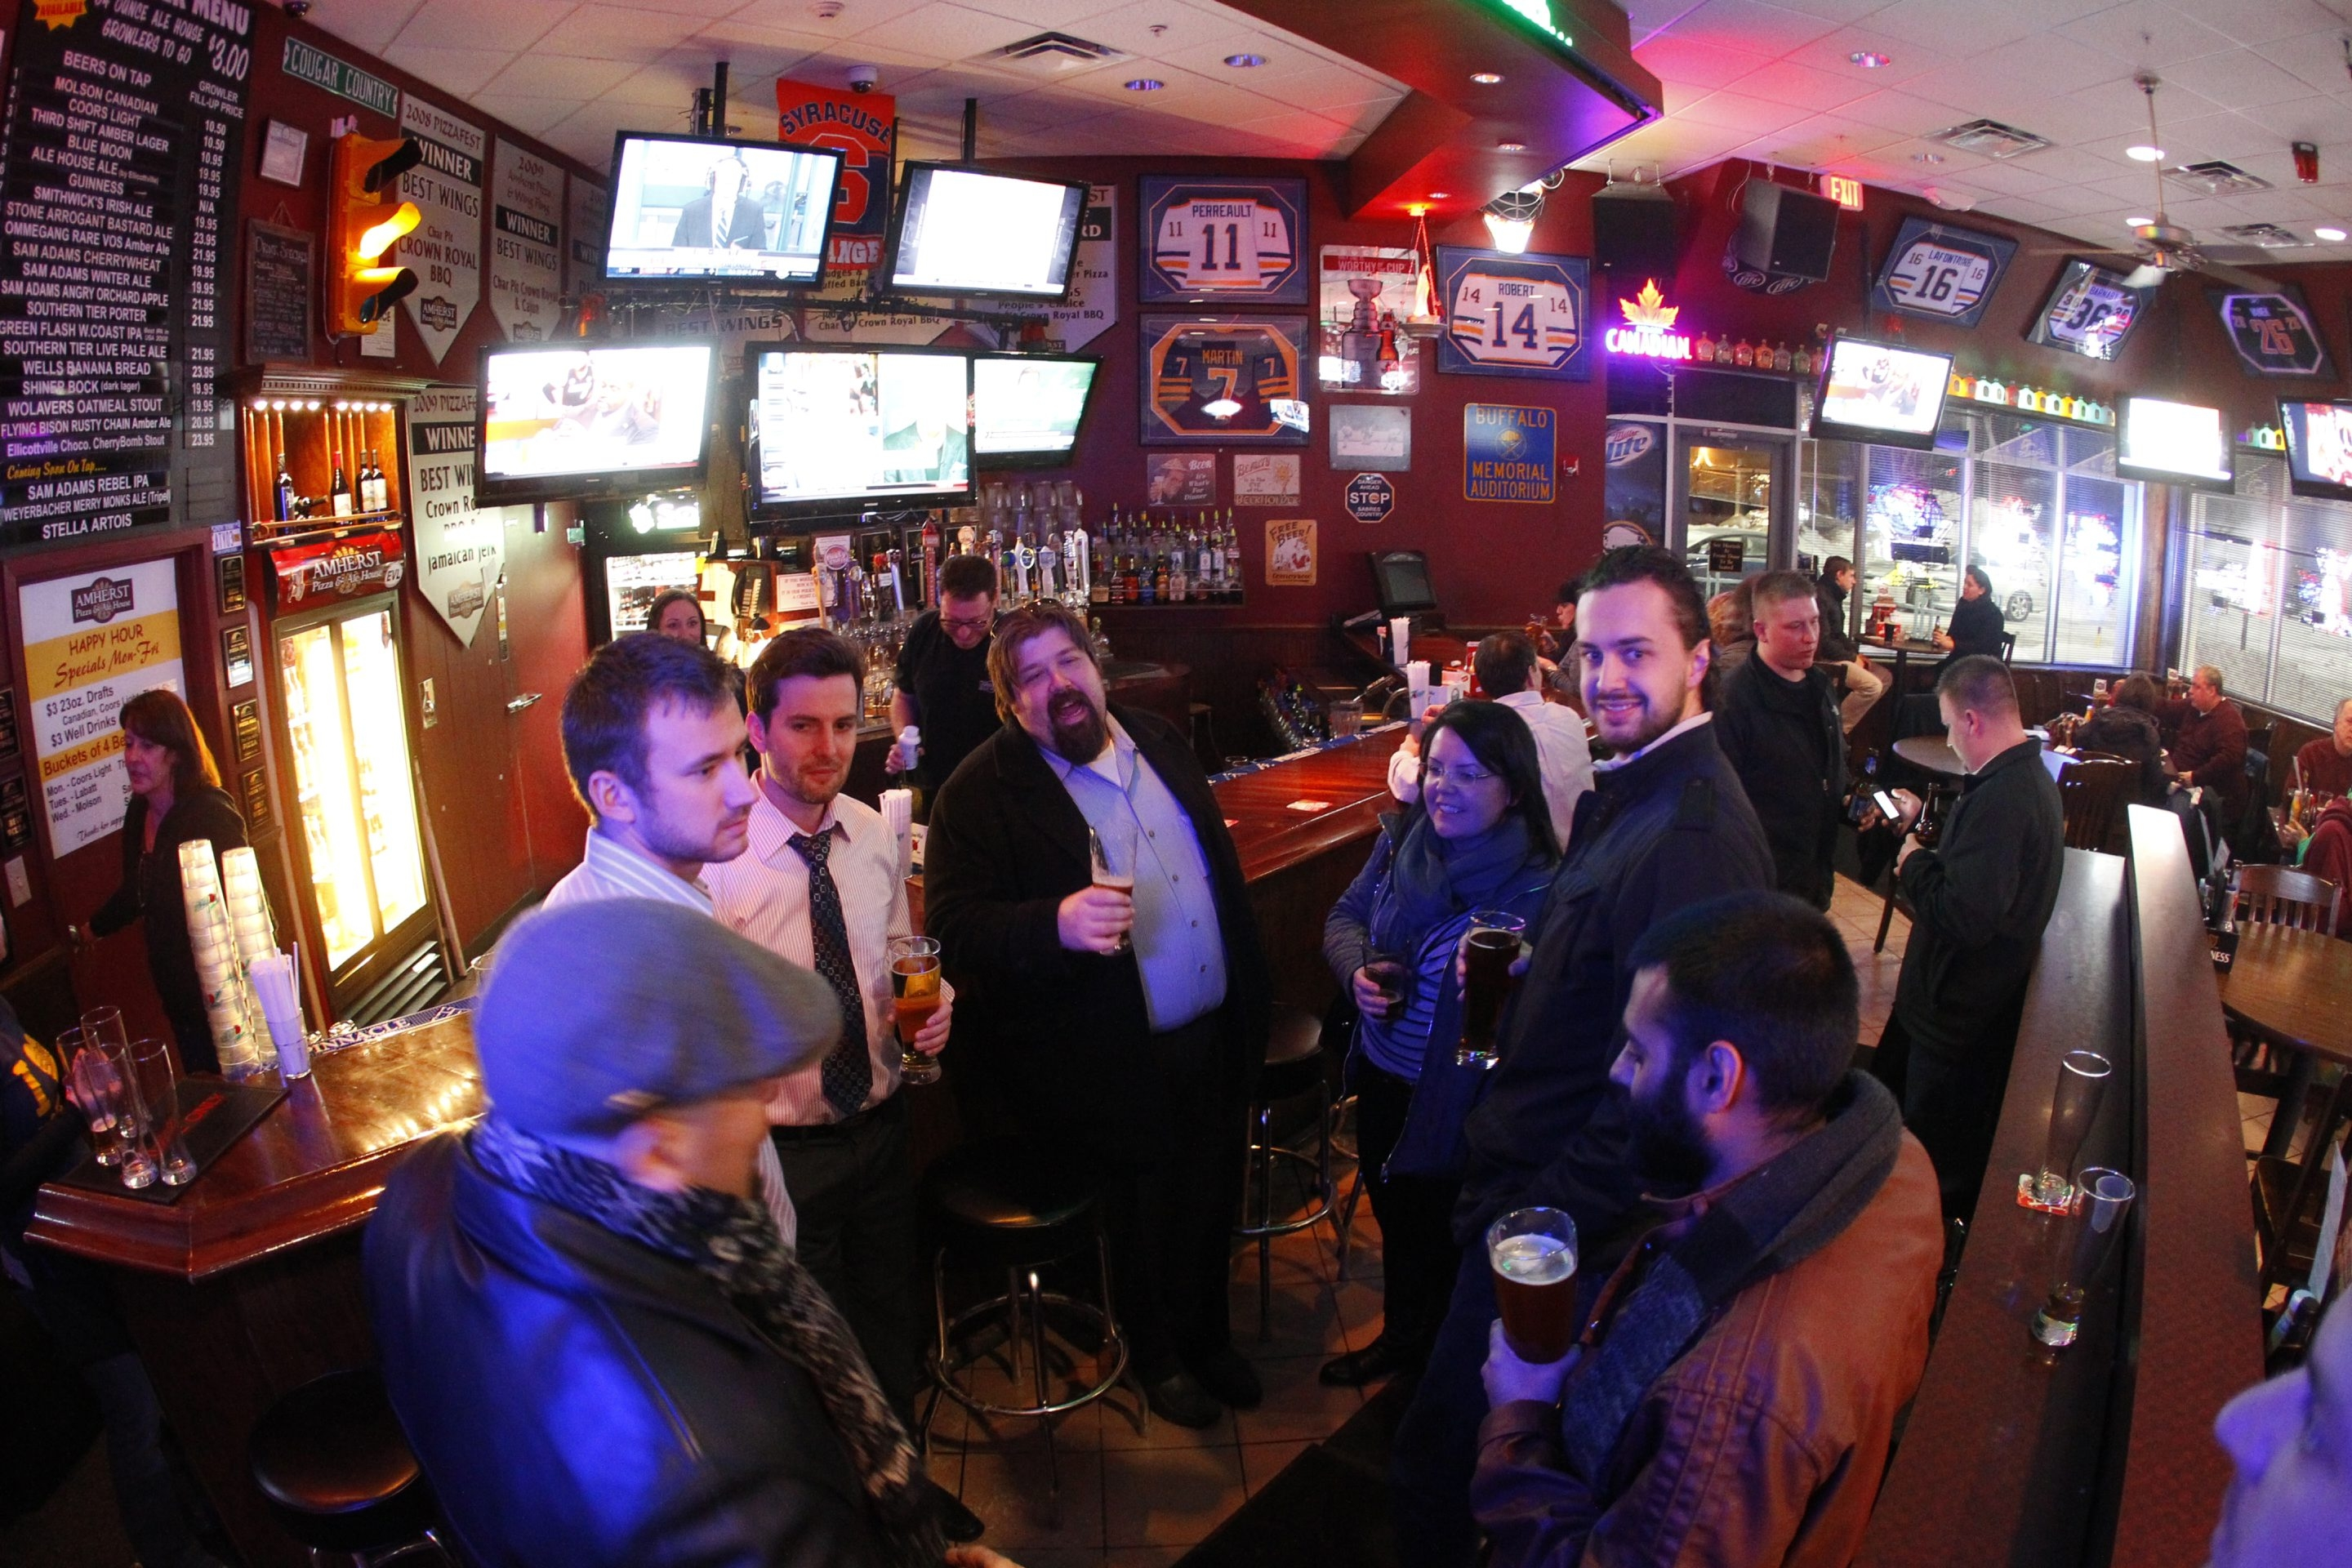 Patrons enjoy the drinks and conversation at the Amherst Ale House.